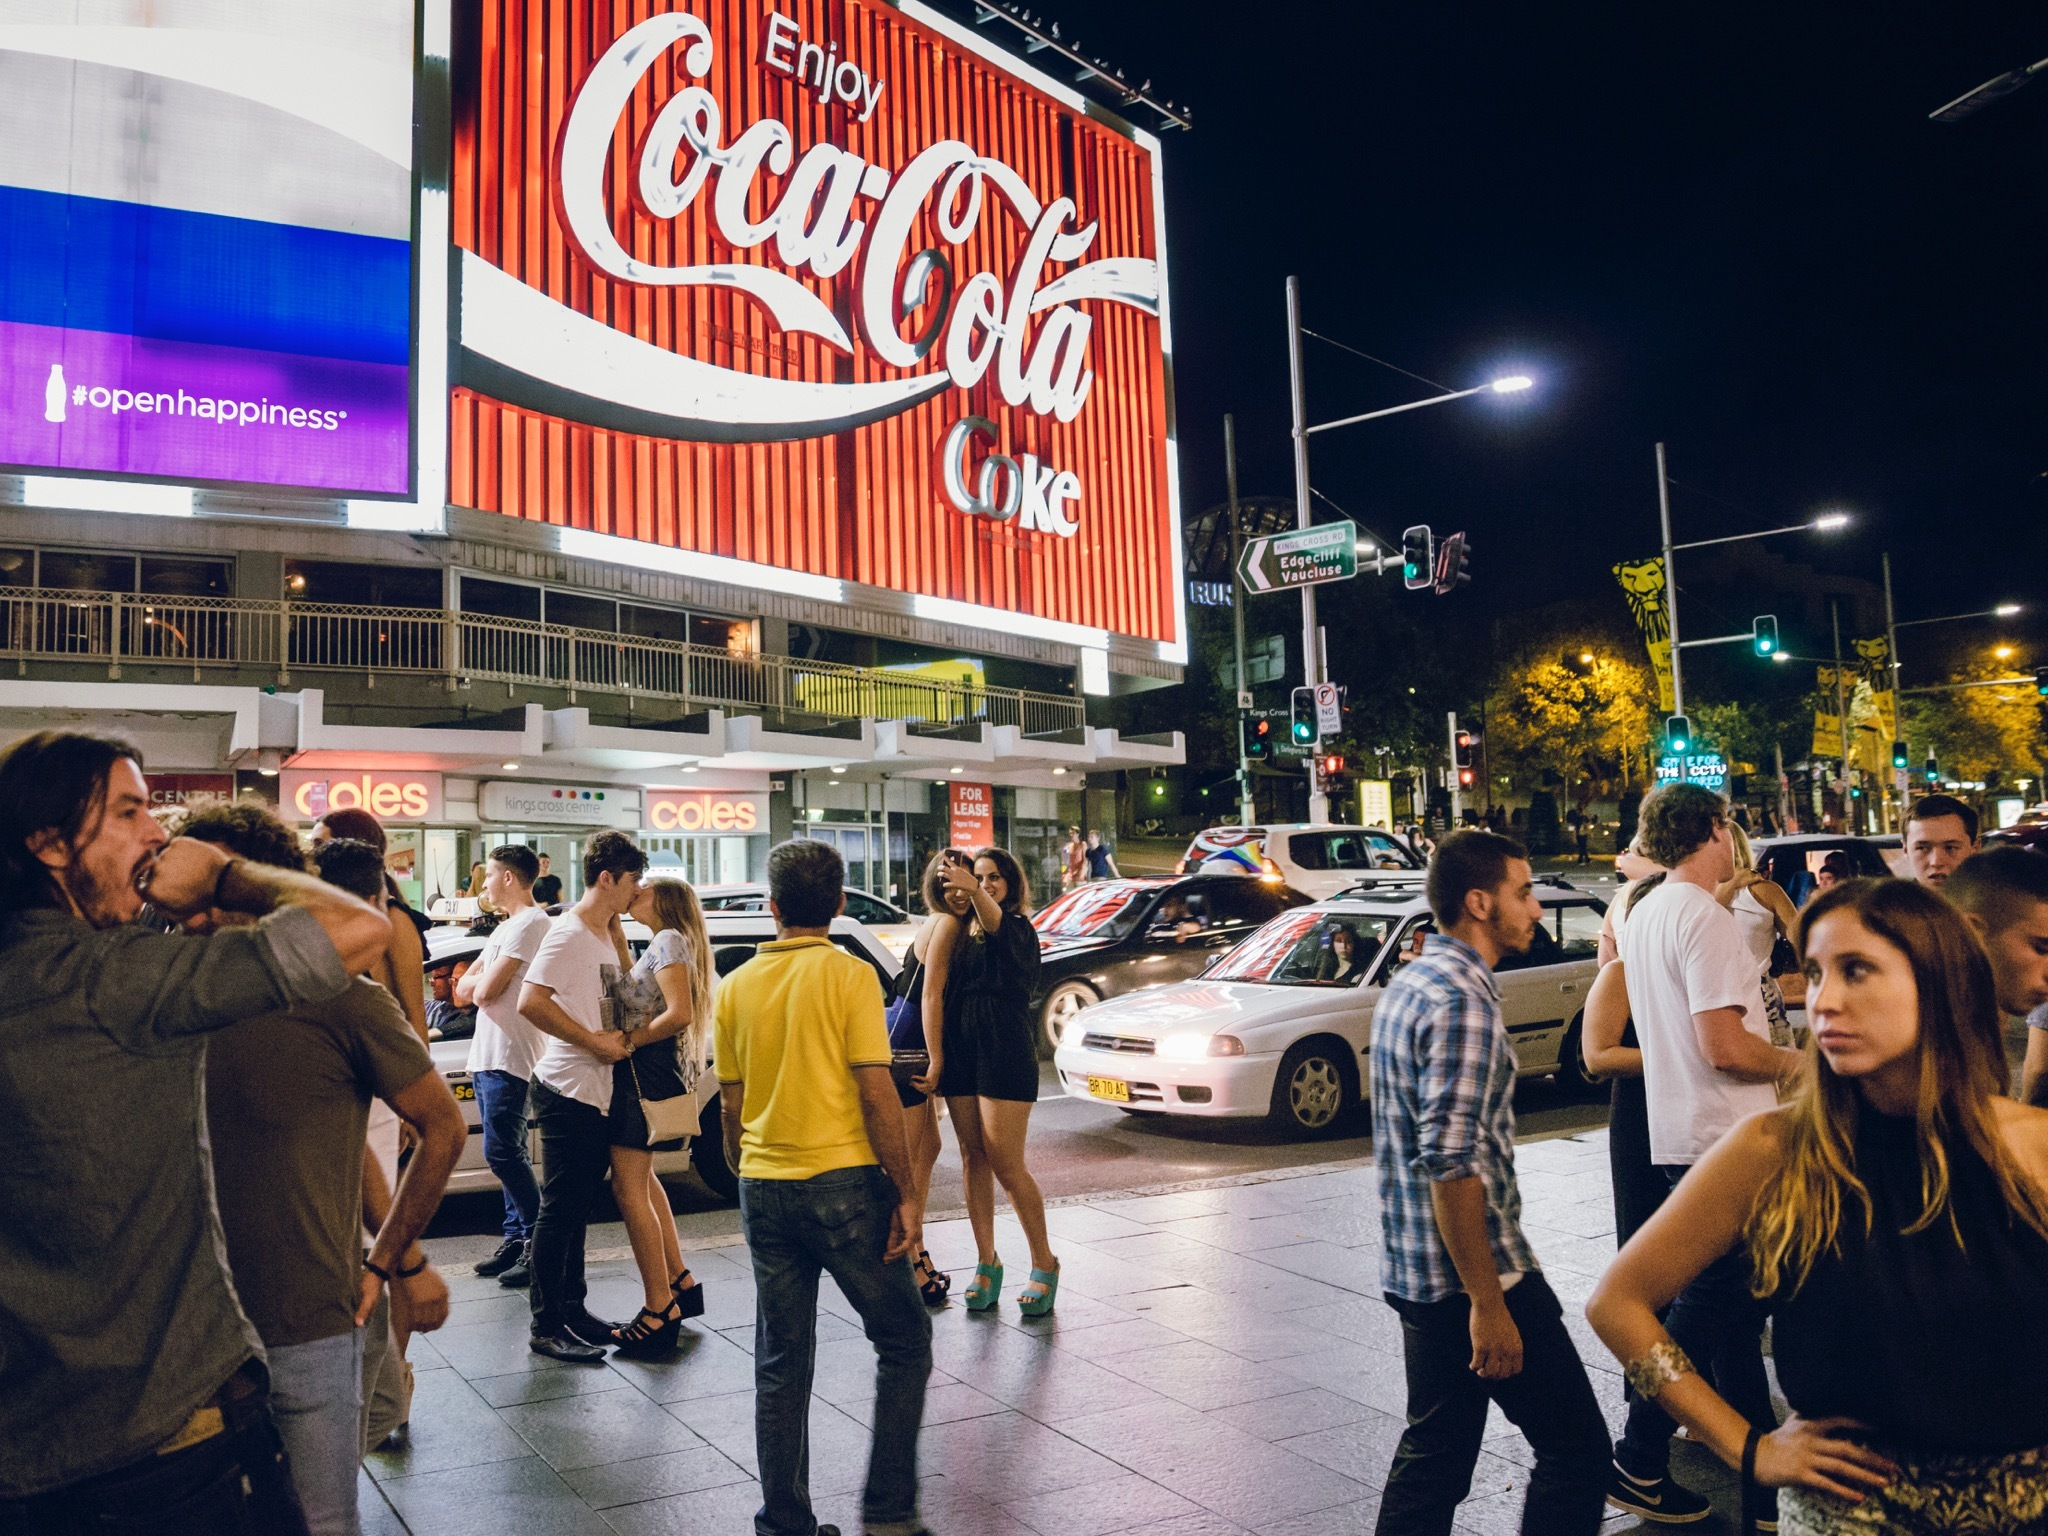 A street shot of Kings Cross in front of the Coke sign at night